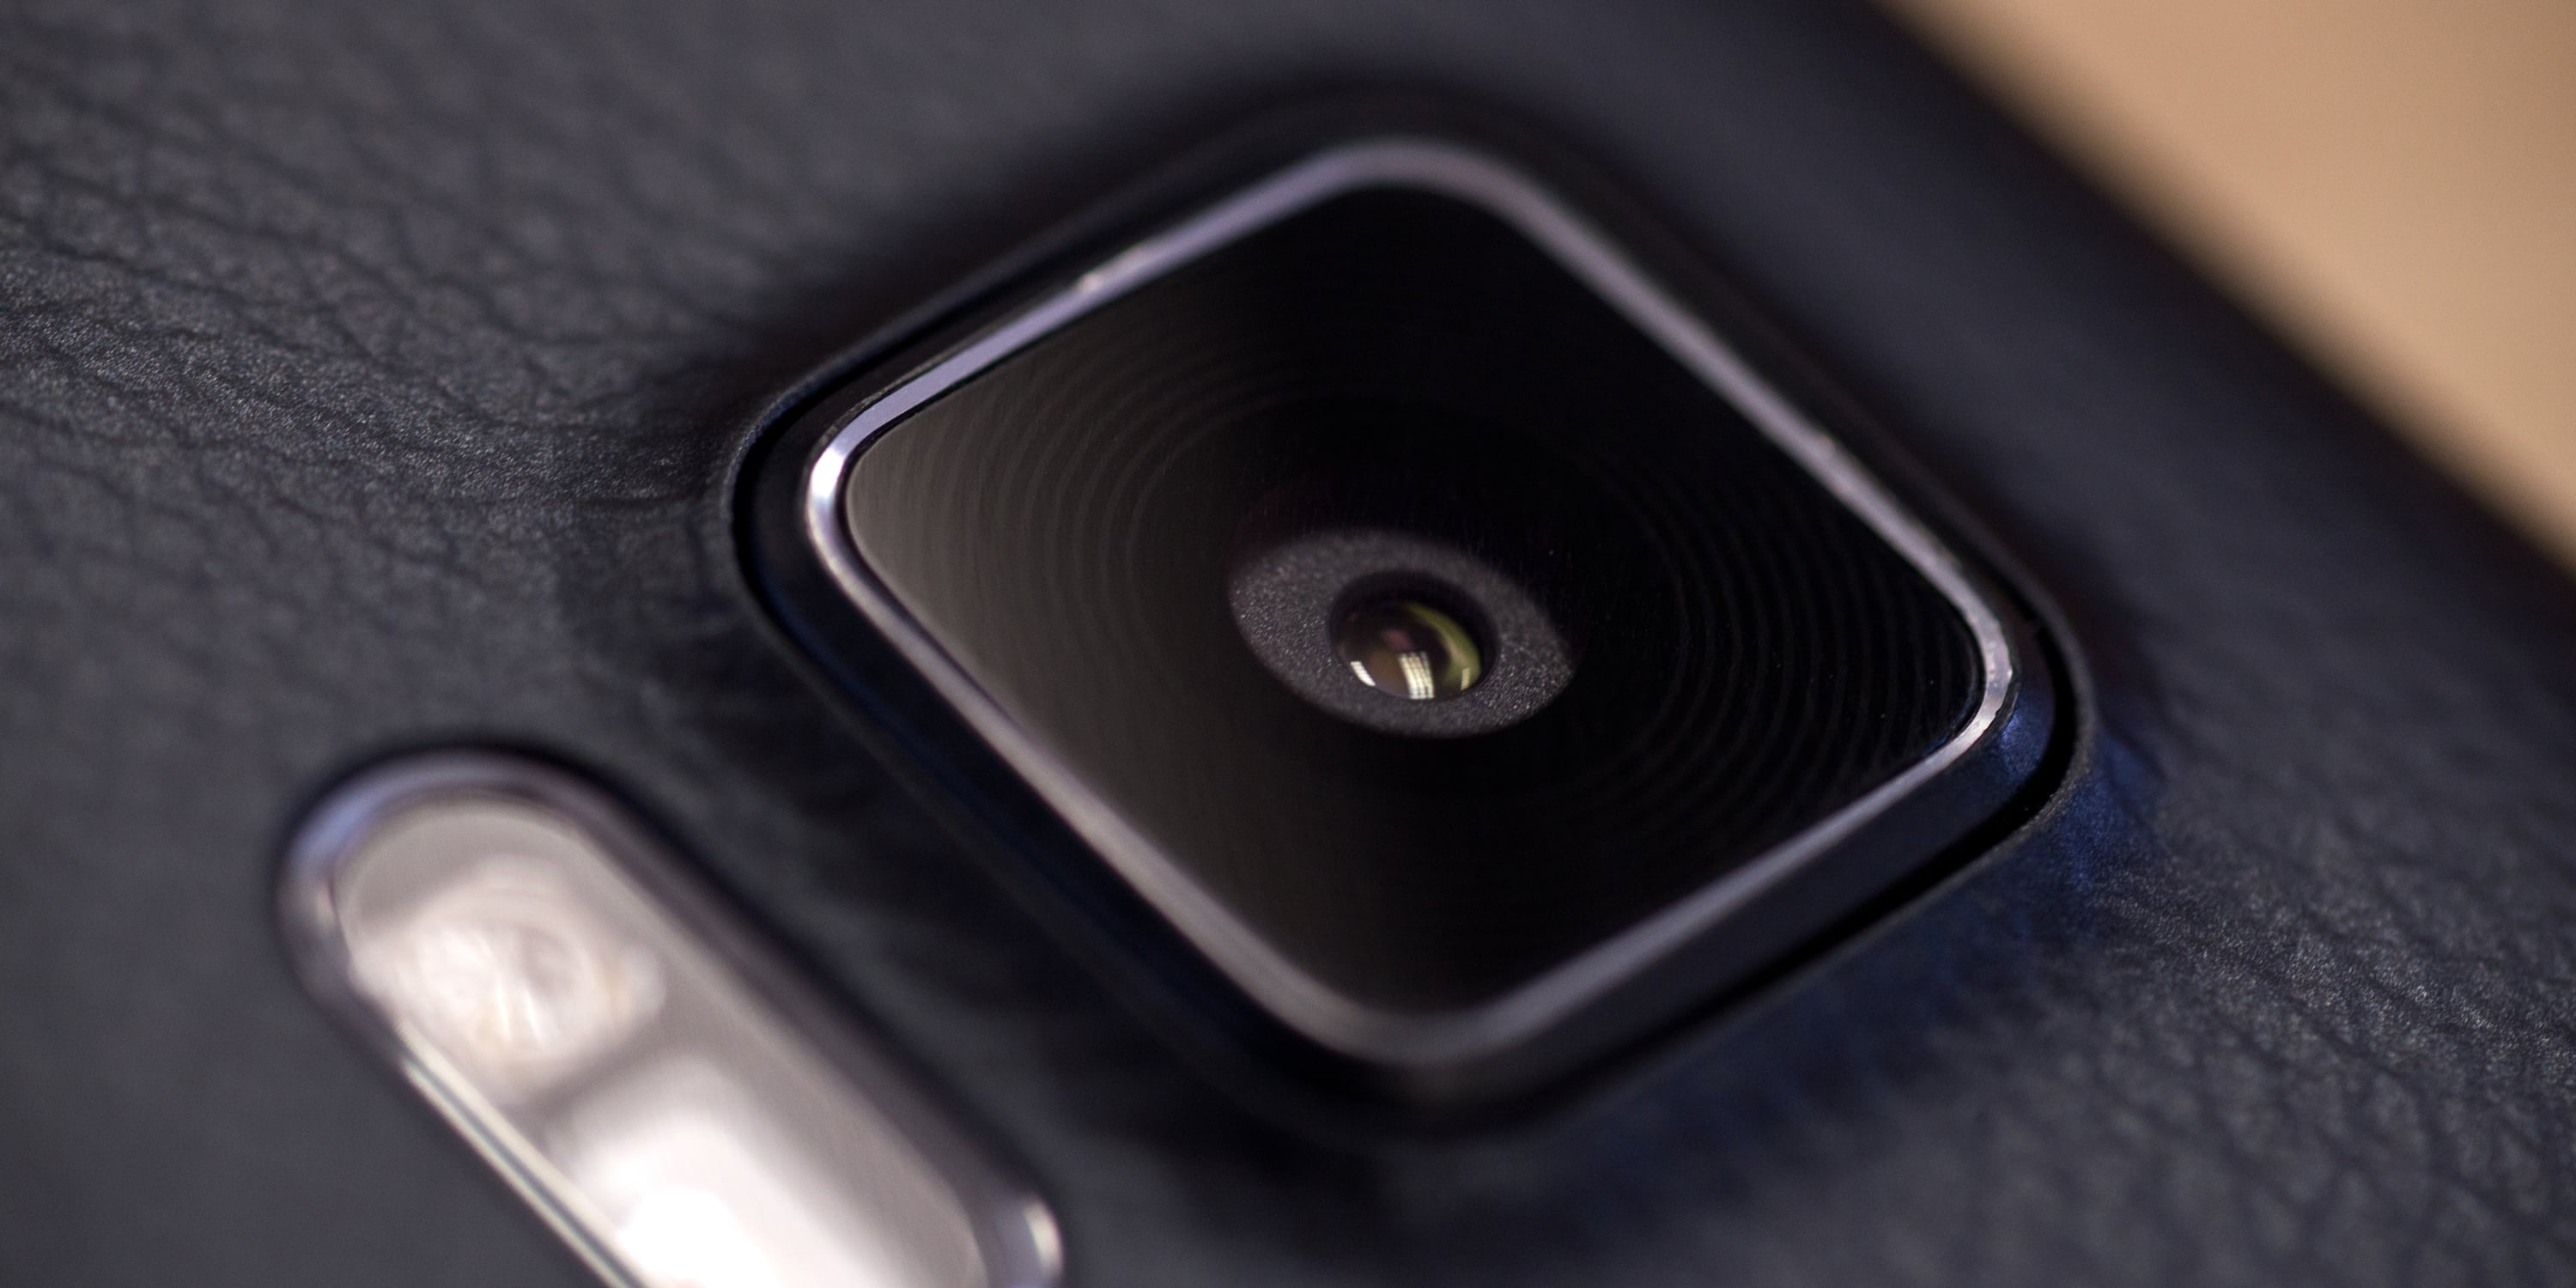 A photograph of the Samsung Galaxy Note 4's camera.